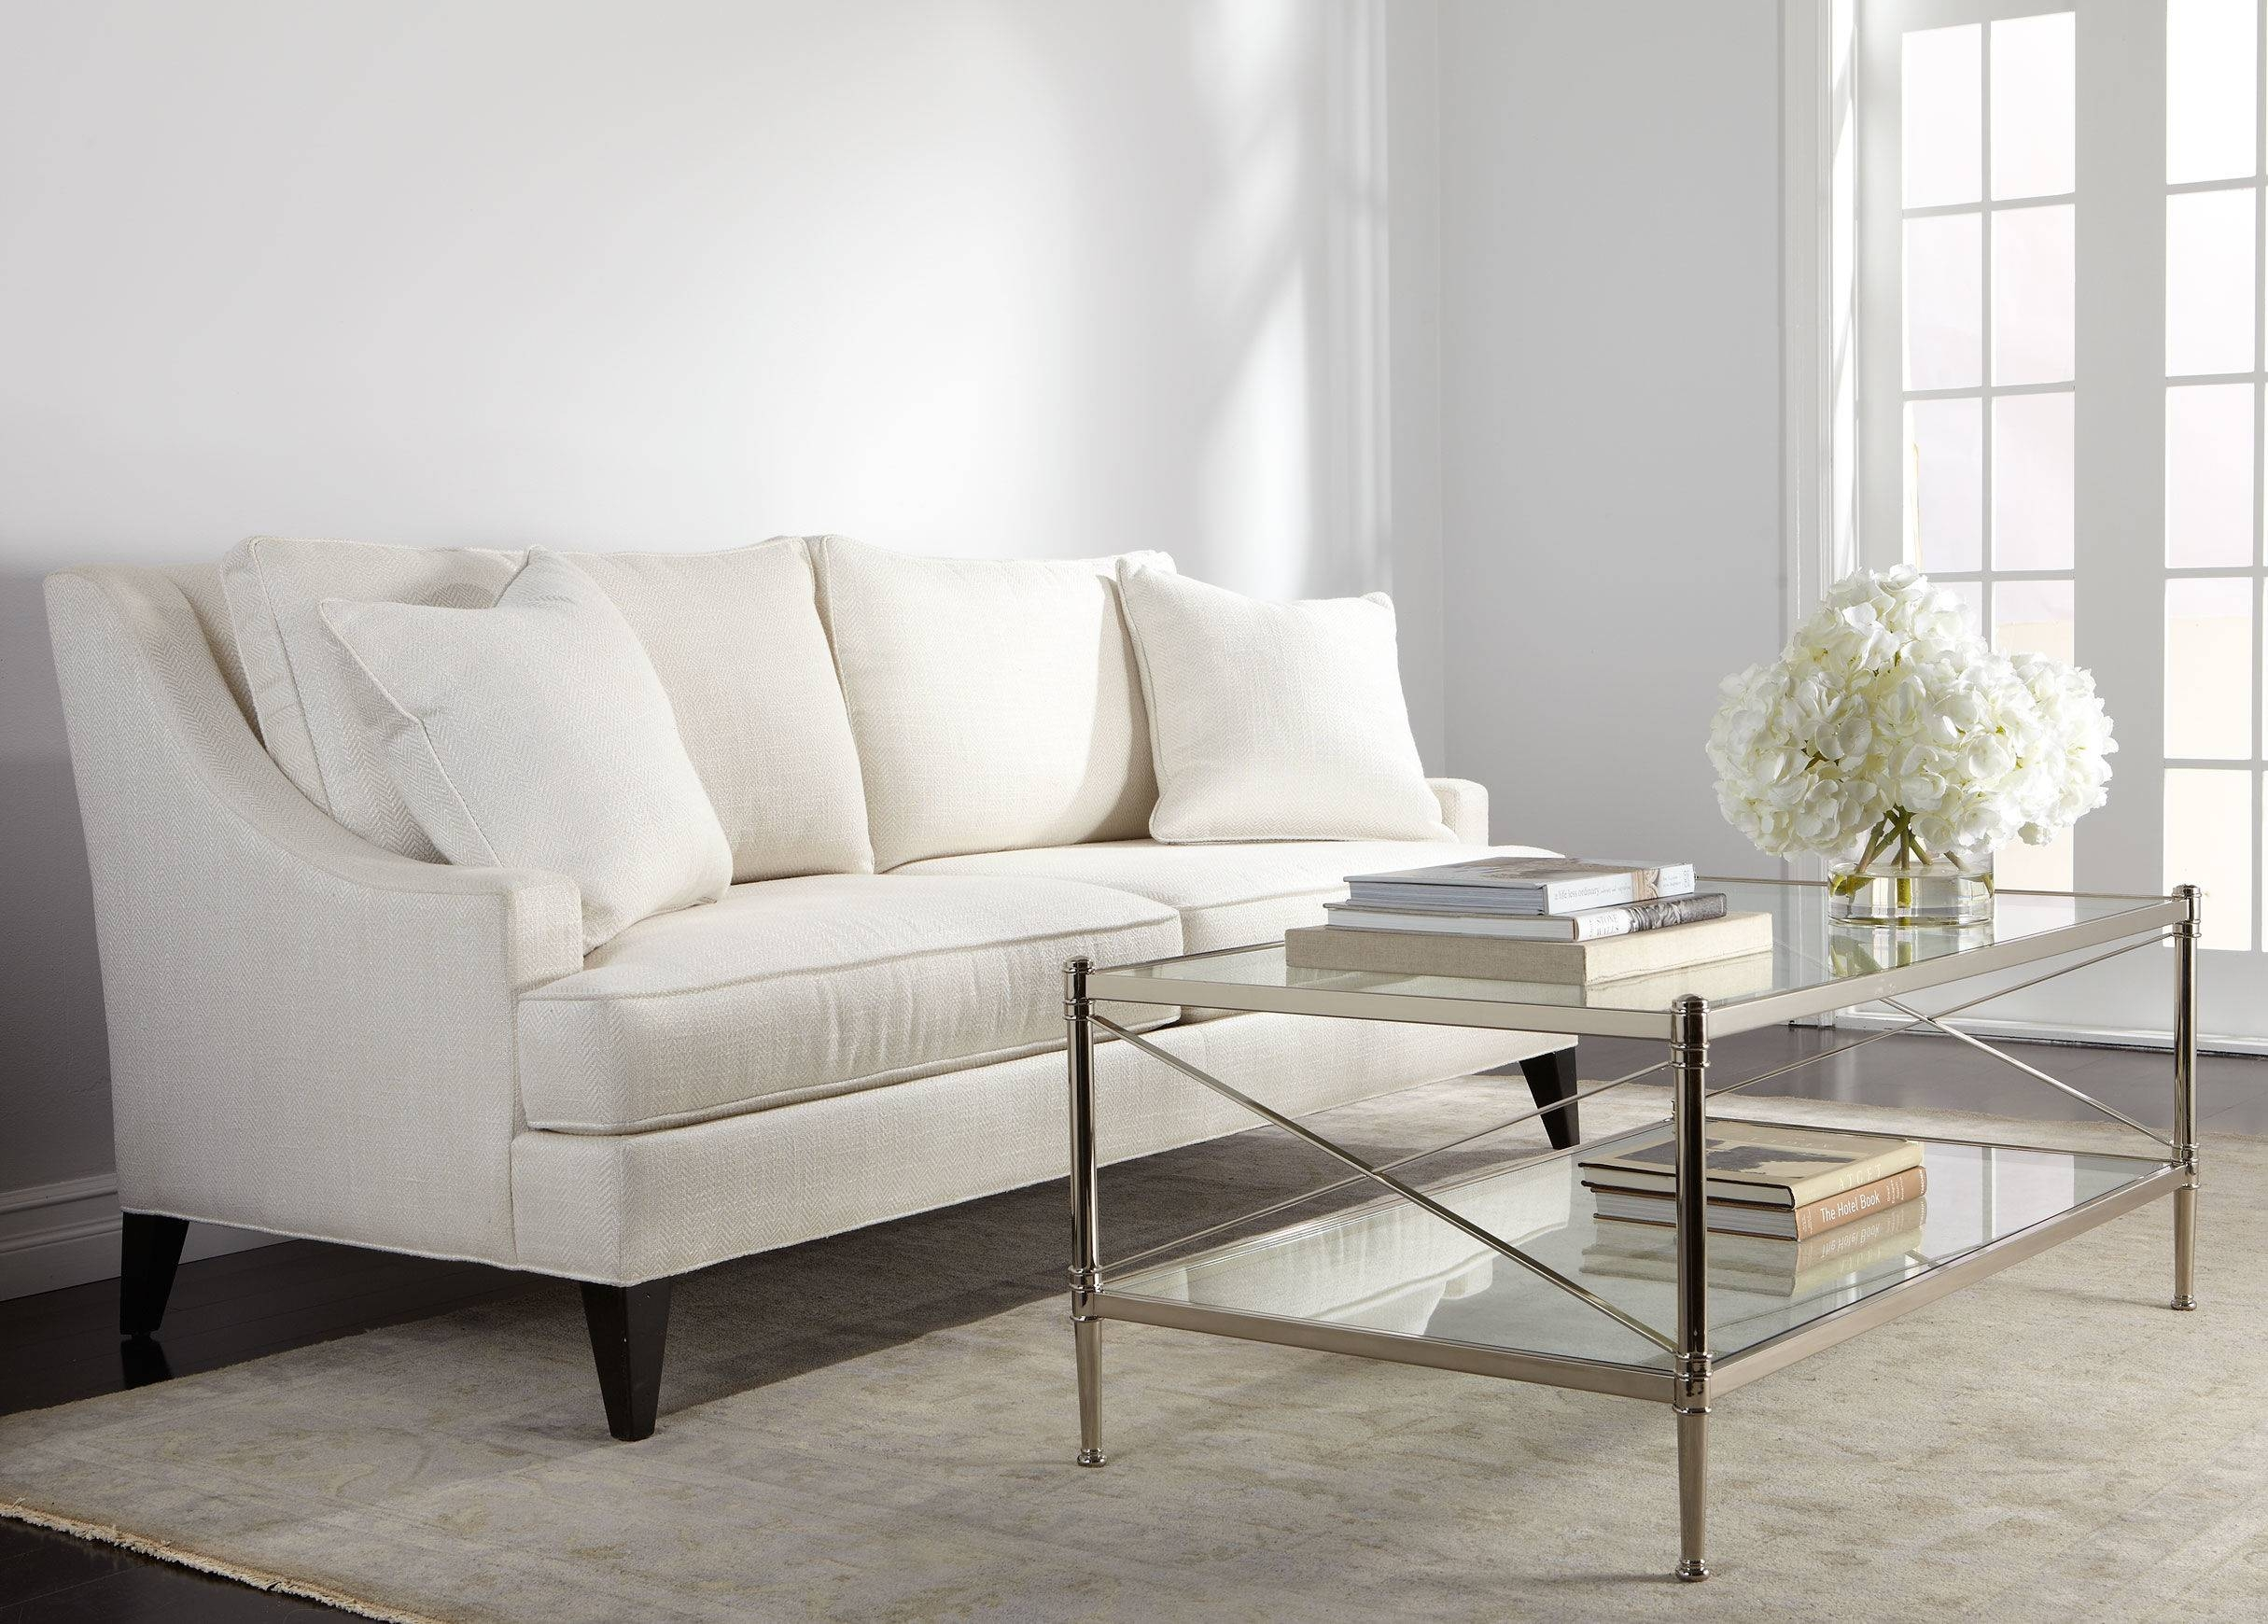 Best Ethan Allen Sleeper Sofas | Homesfeed in Allen White Sofas (Image 3 of 15)